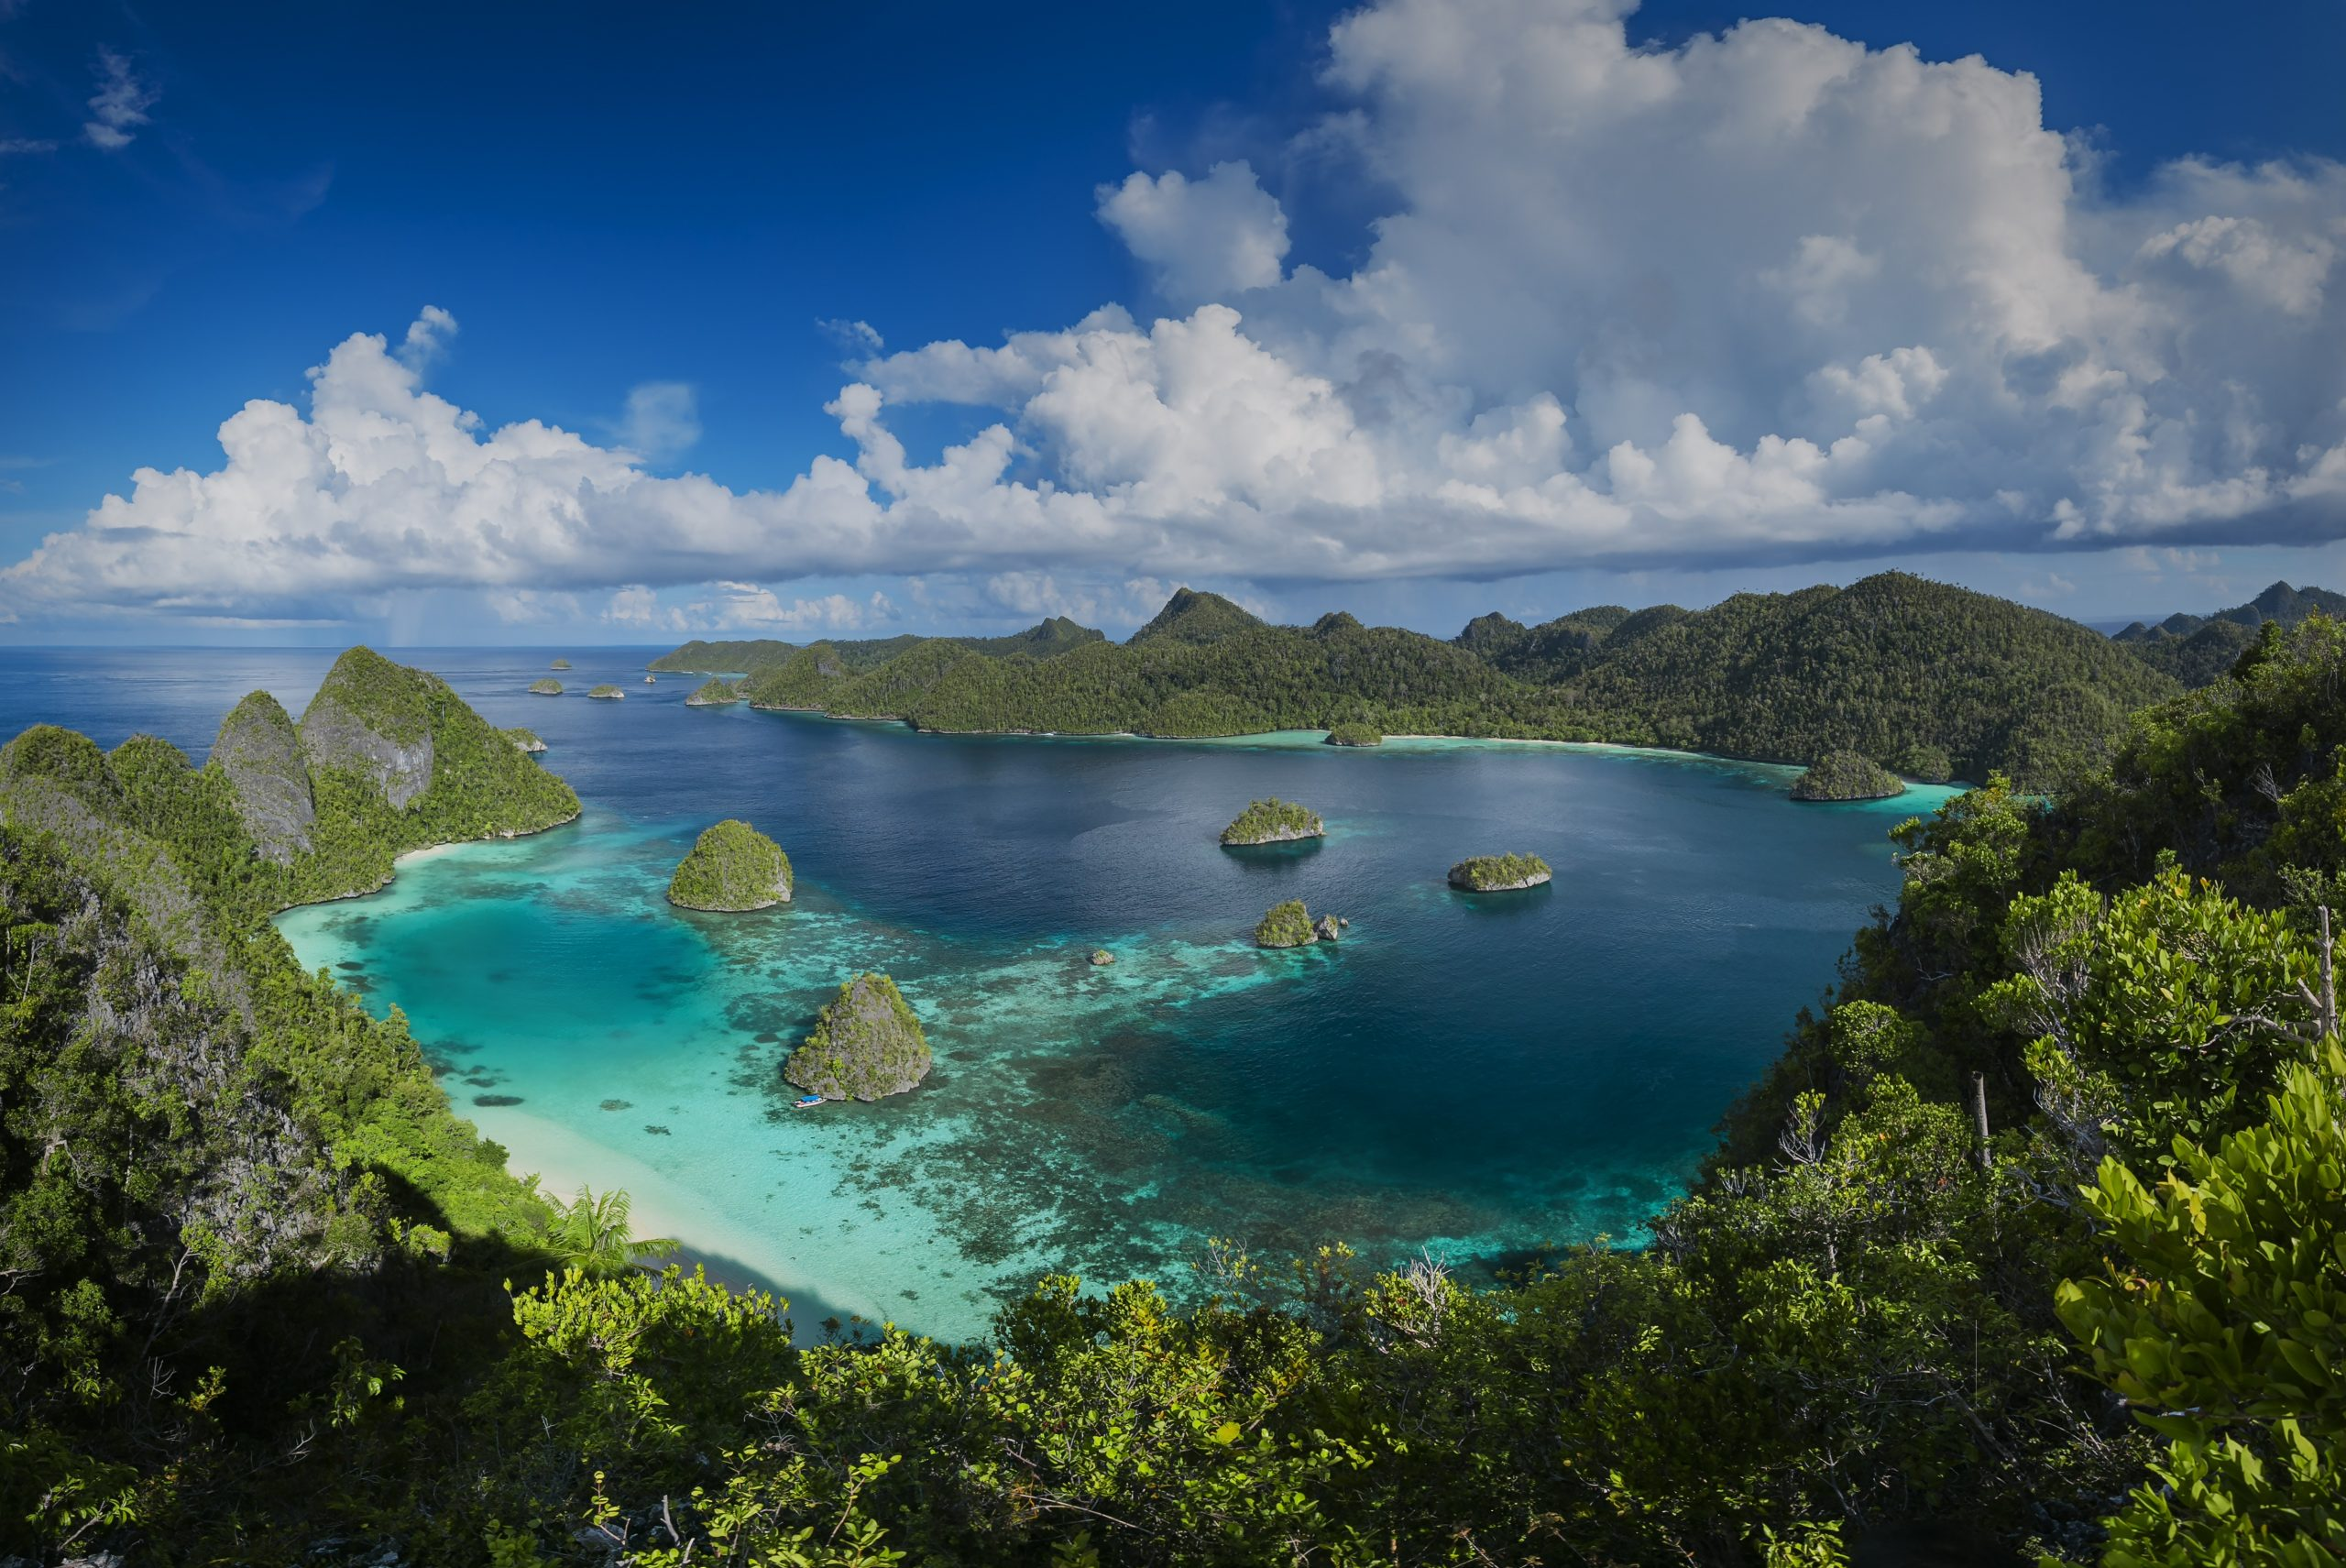 New Guinea is the world's richest island for plants • Earth.com - Earth.com